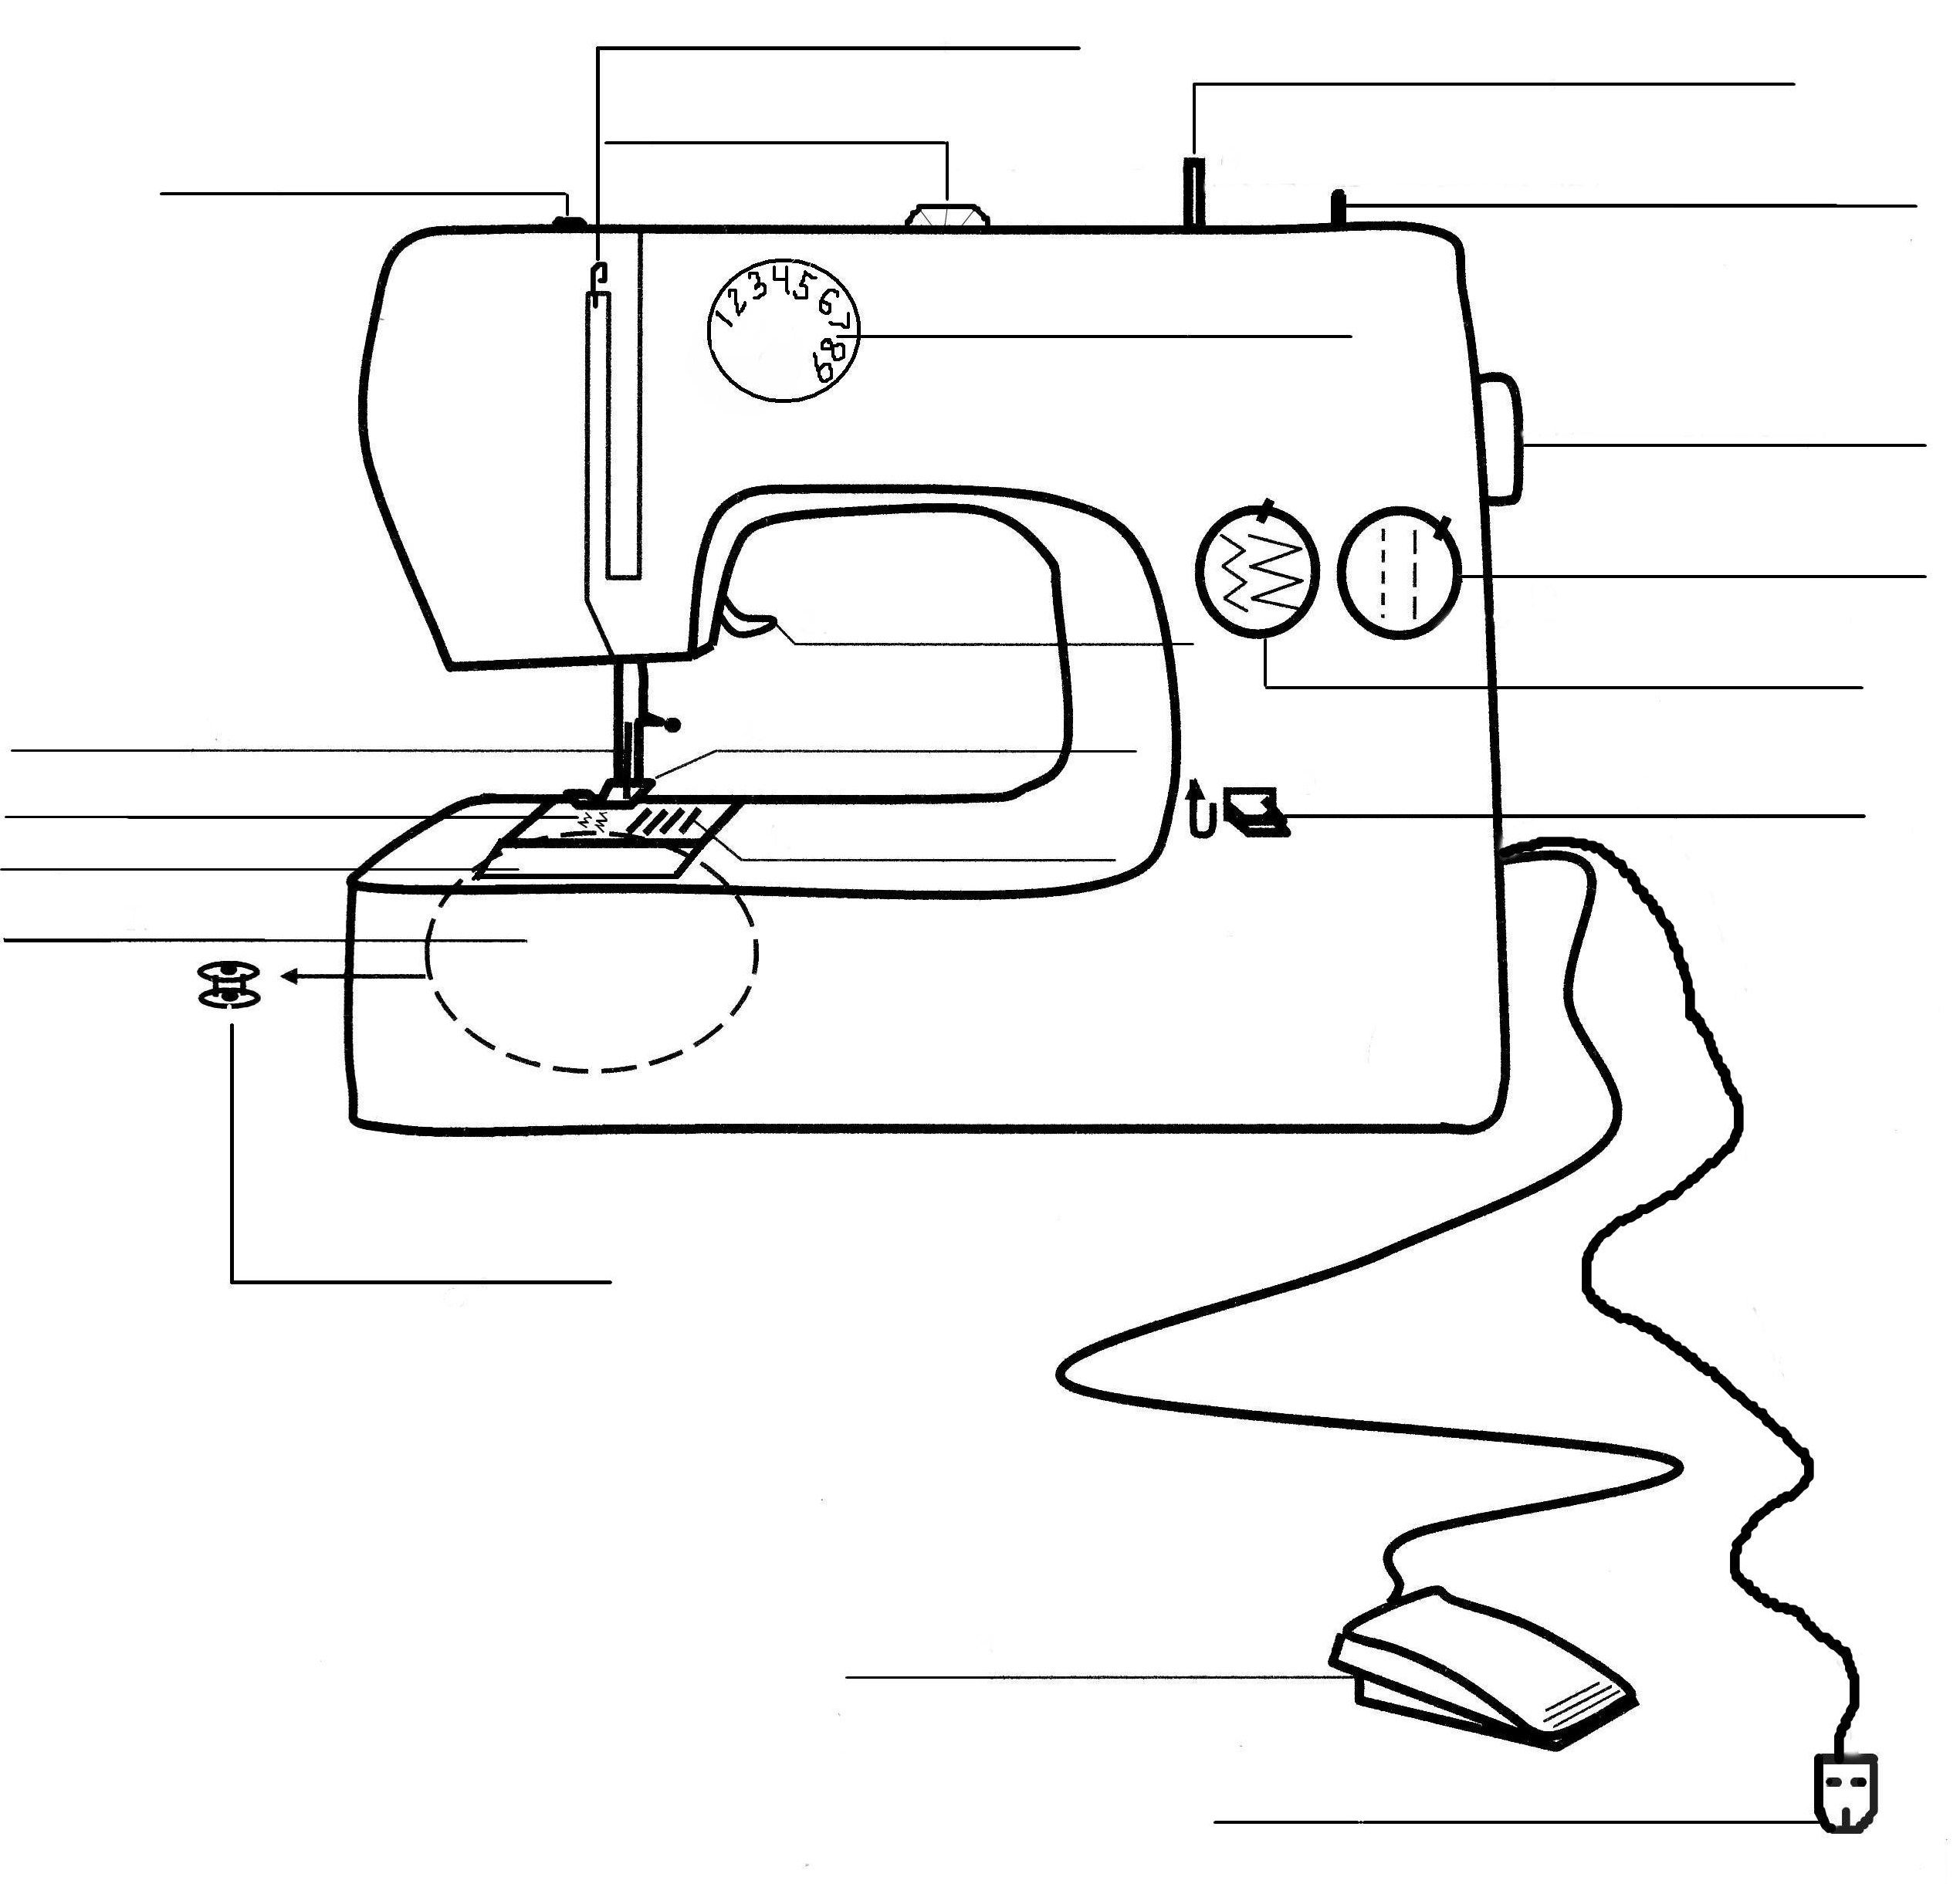 Sewing Basics Worksheet Answers